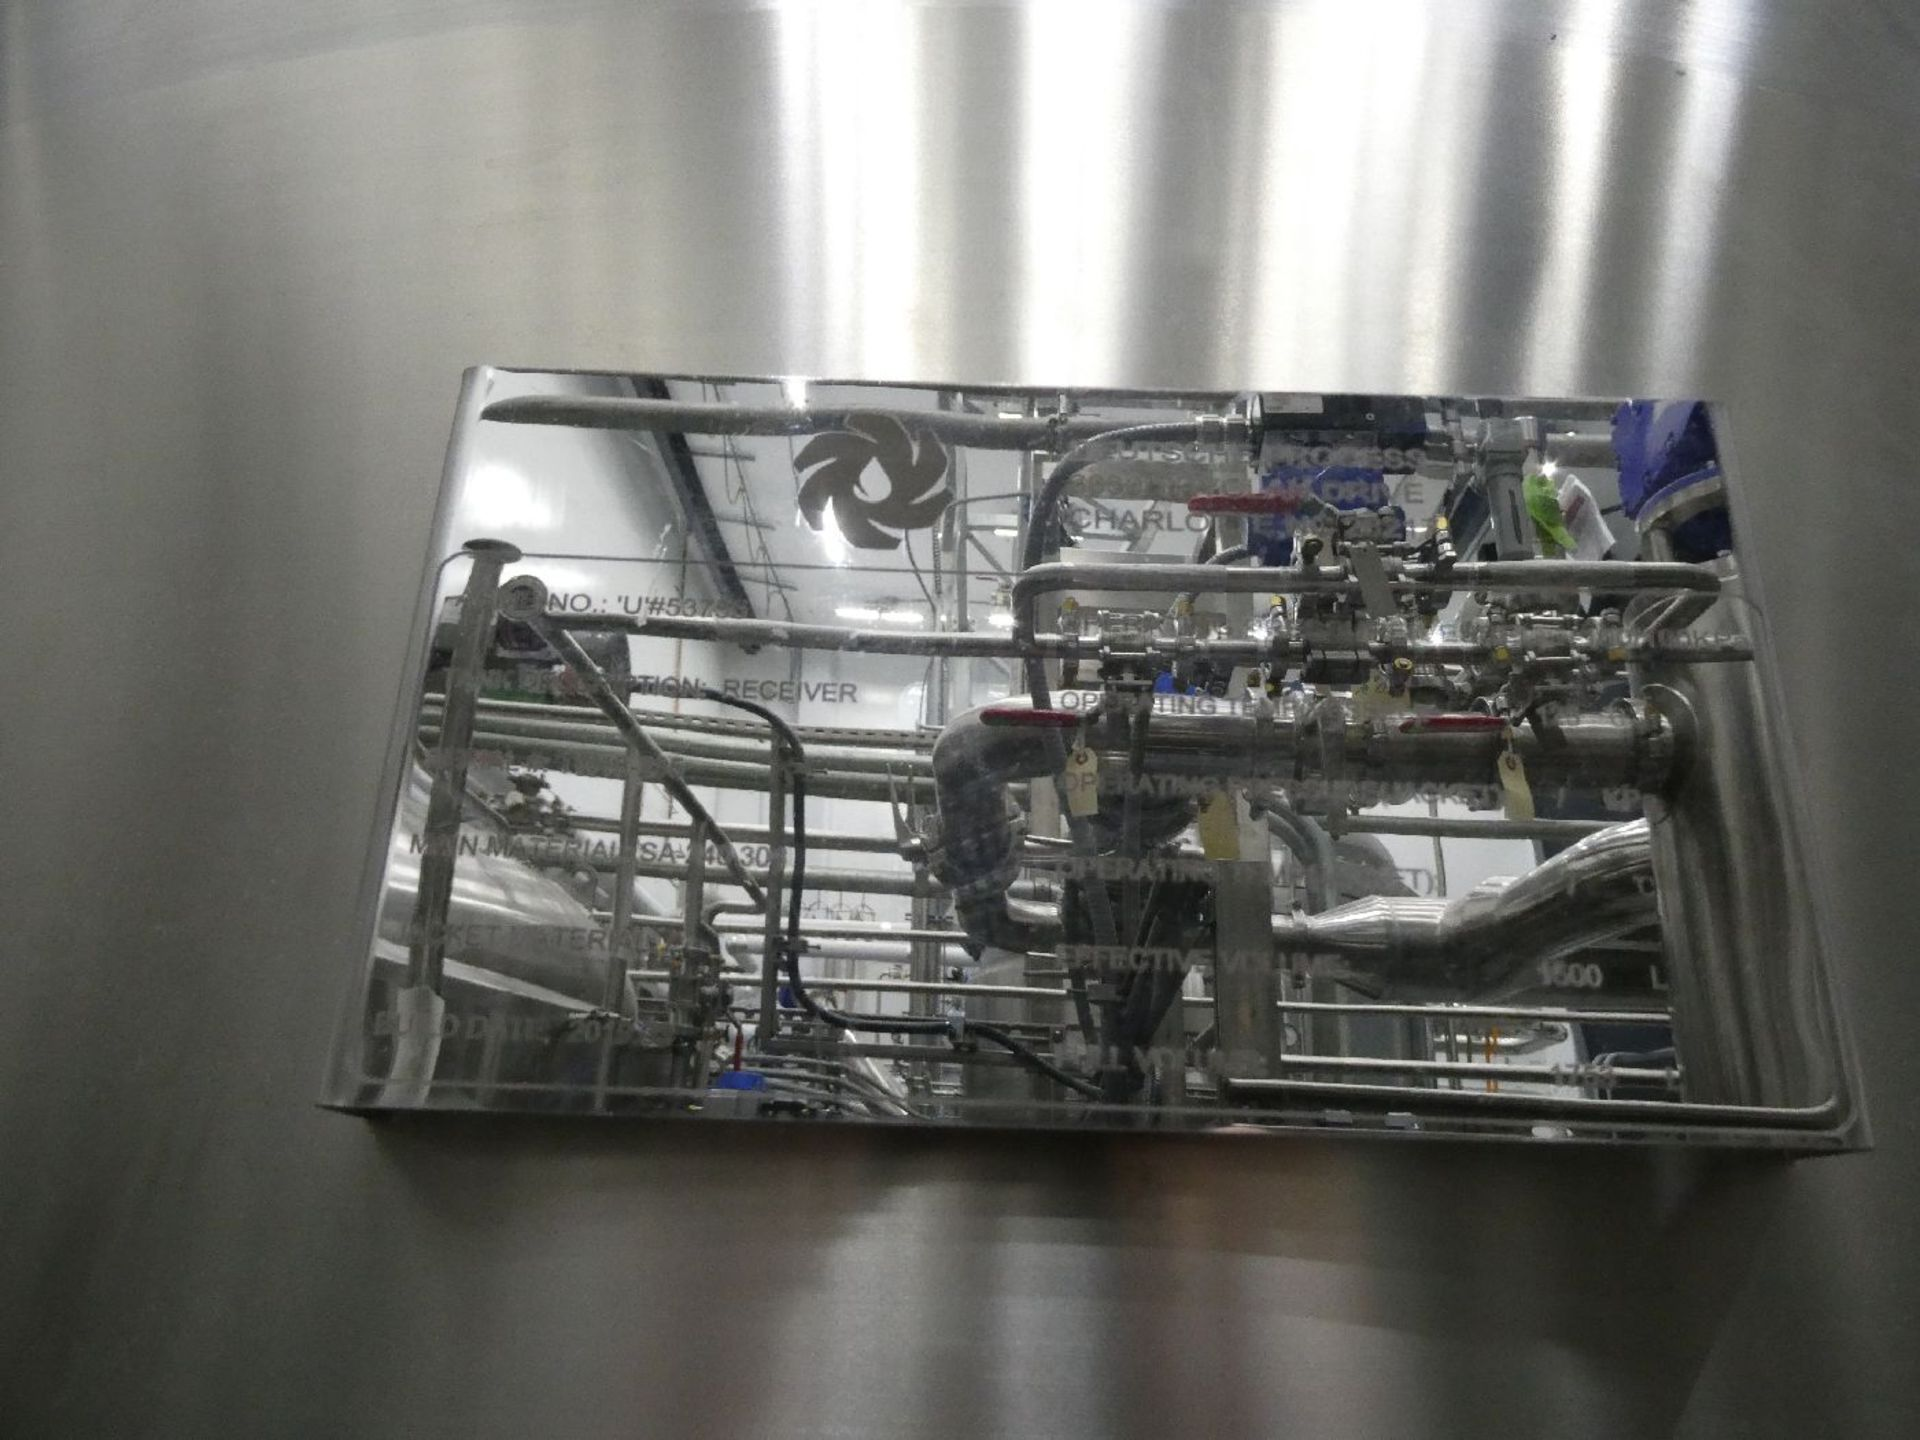 ROTAX Closed Loop Solvent Based Continuous Oil Extraction System - Image 43 of 68